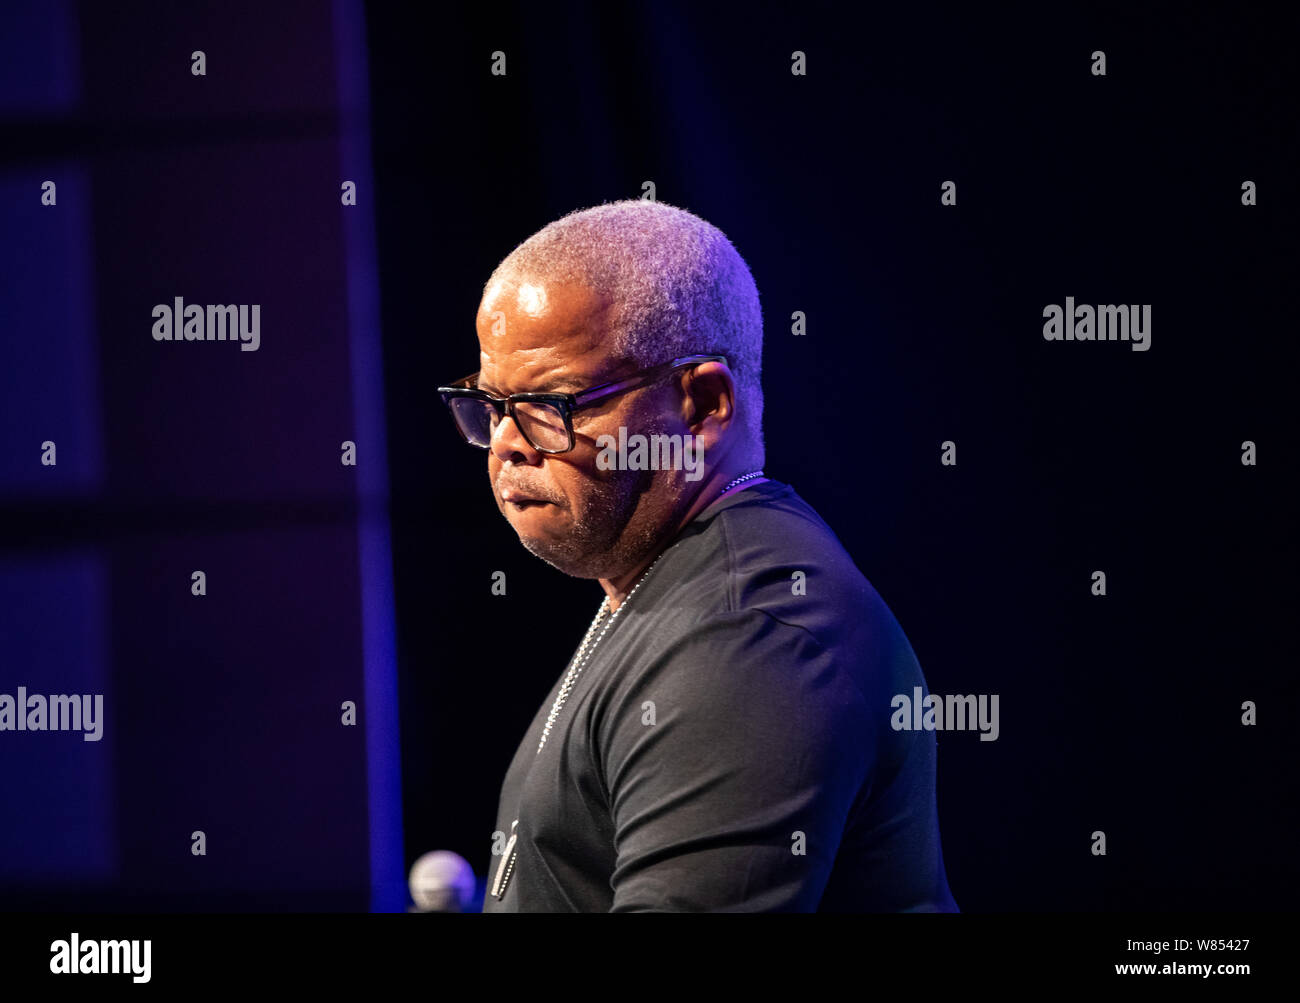 Cracow, Poland - July 17, 2019: Terence Blanchard and The E-Collective on stage in Manggha Museum of Japanese Art and Technology at the Summer Jazz Fe Stock Photo